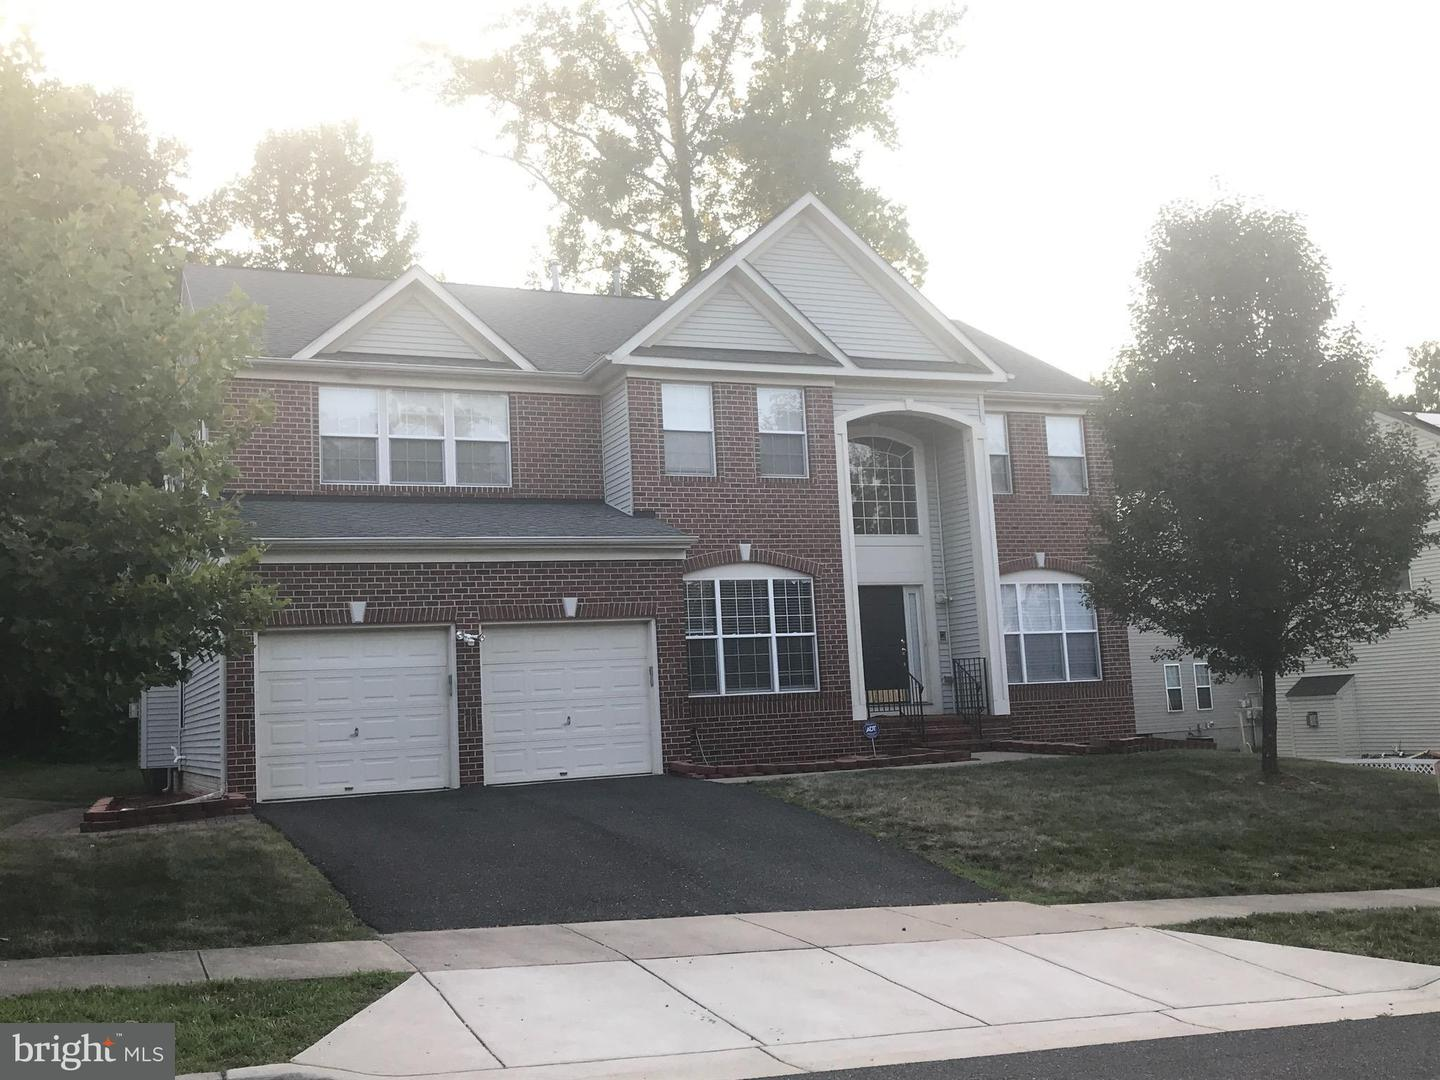 Other Residential for Rent at 9016 Helmsley Dr Clinton, Maryland 20735 United States